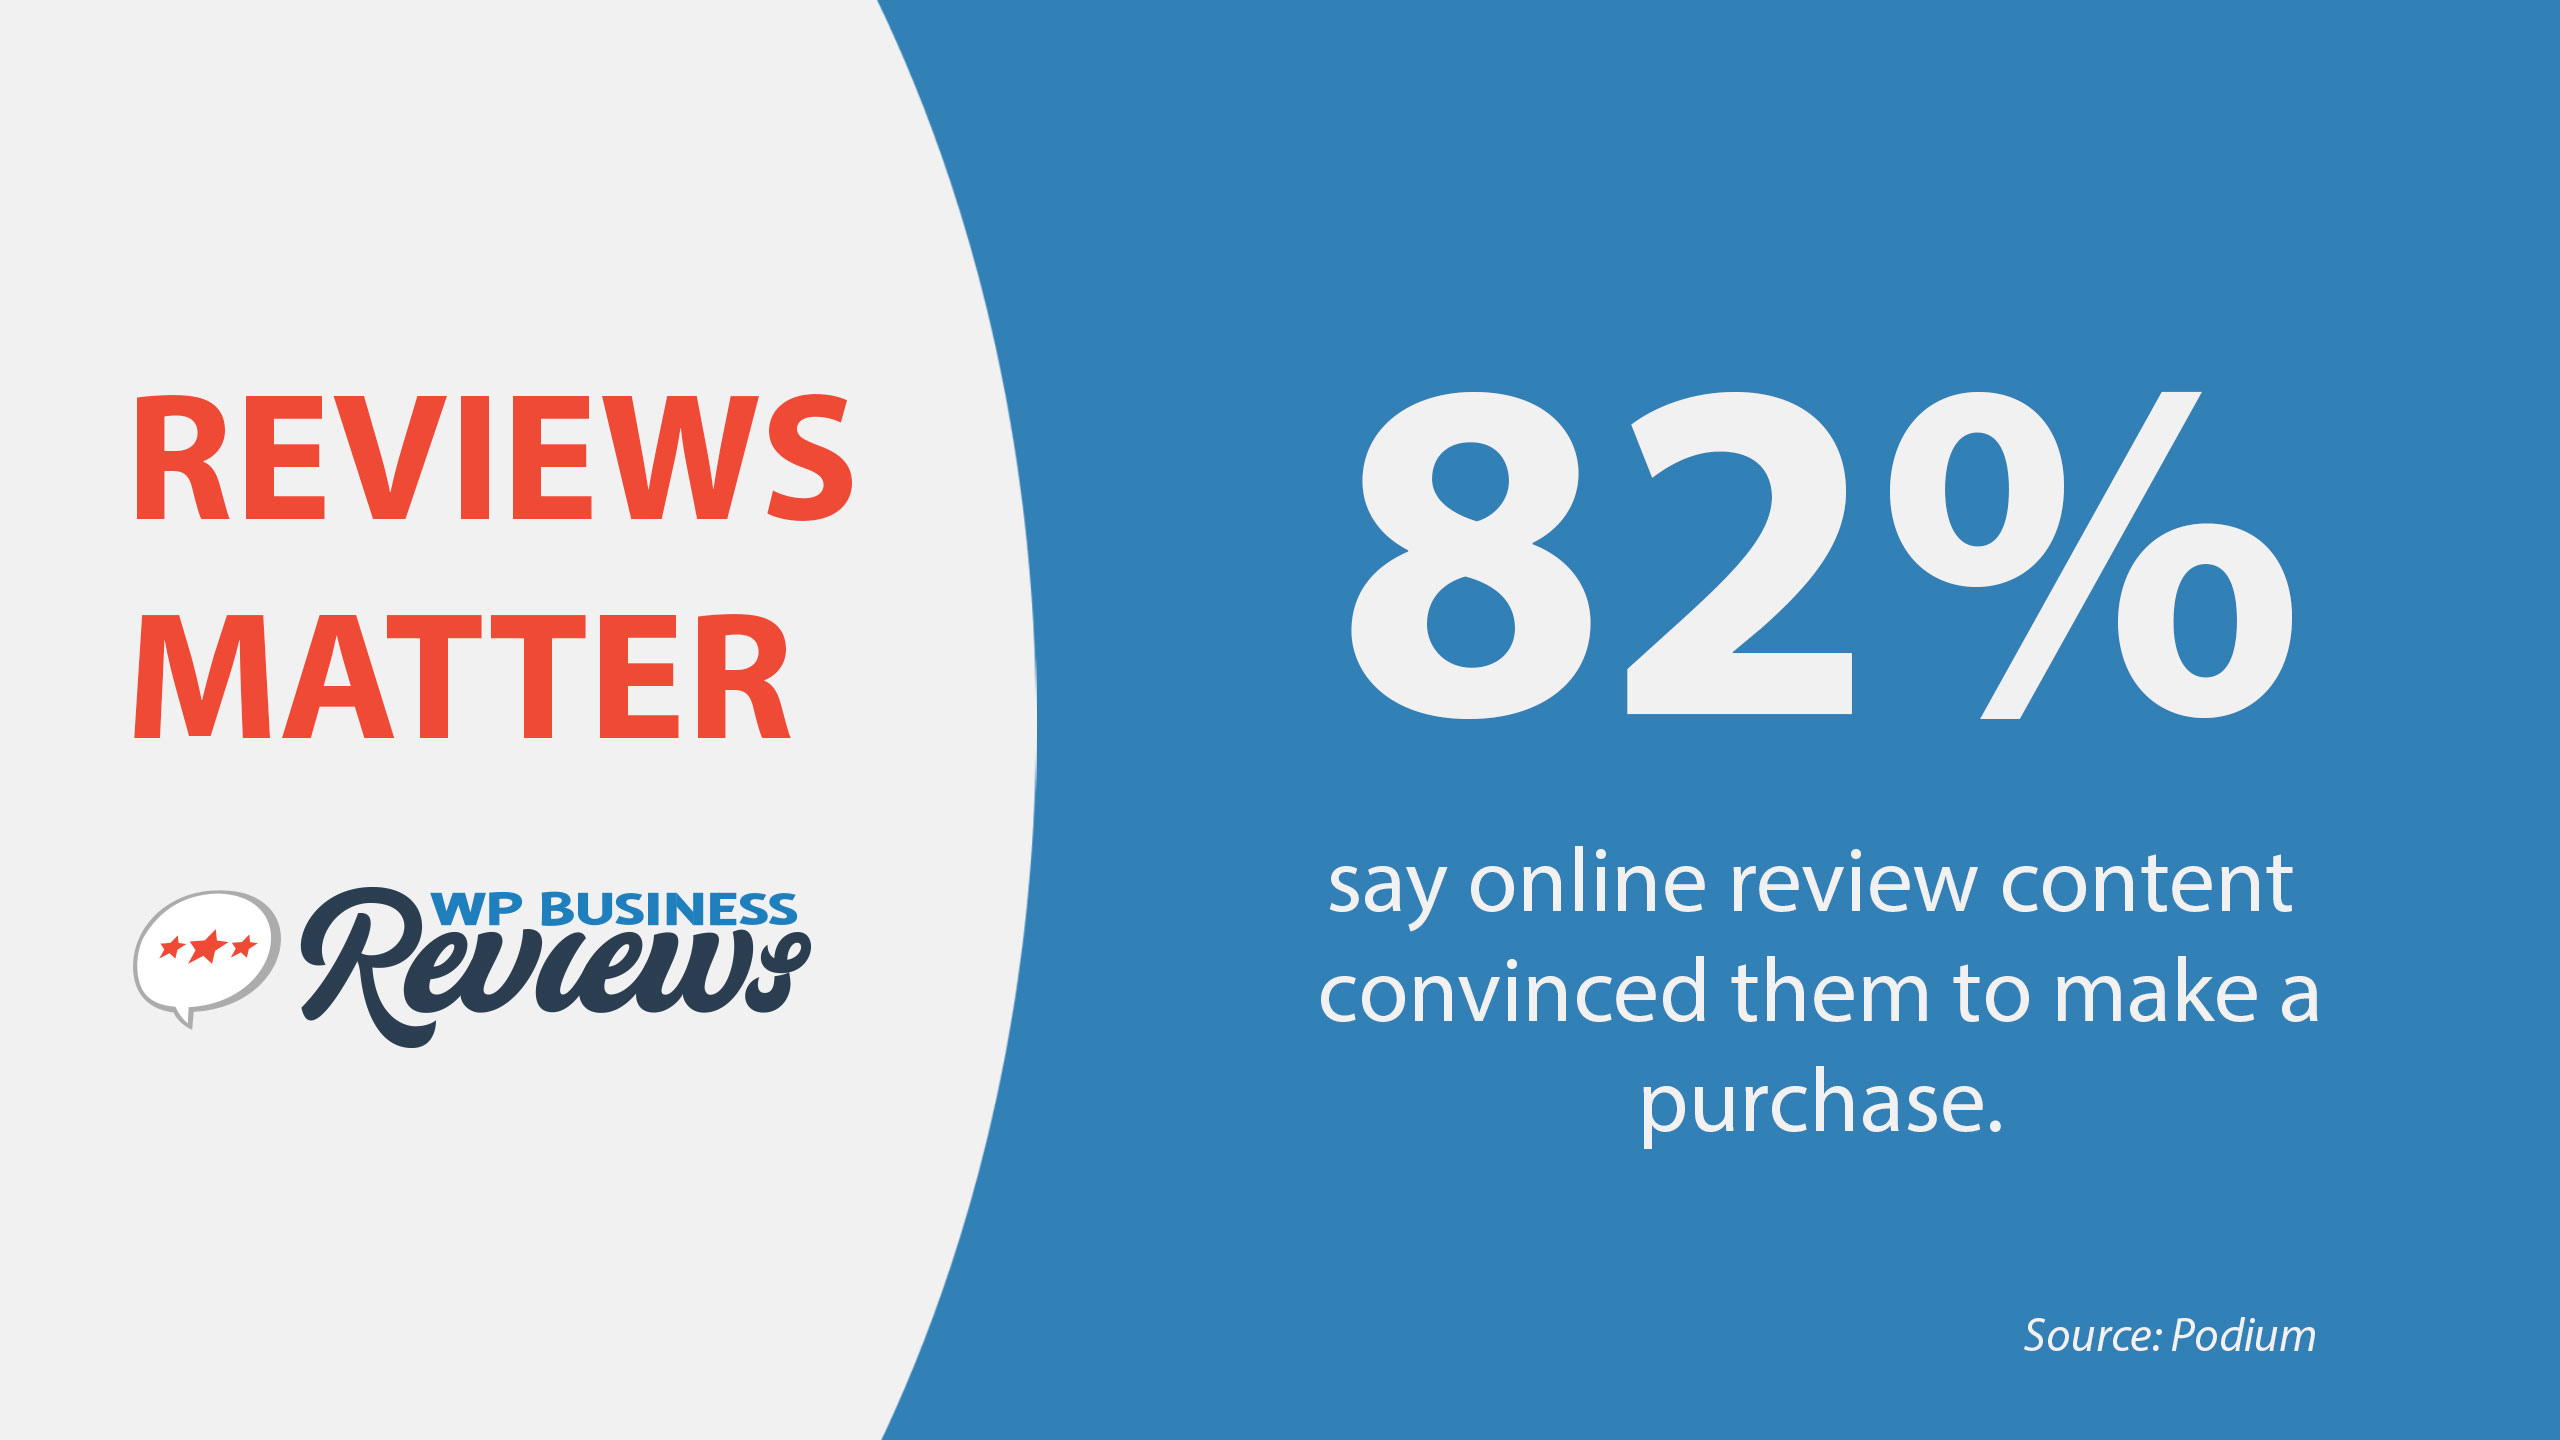 According to Podium: 82% of people say online review content convinced them to make a purchase.